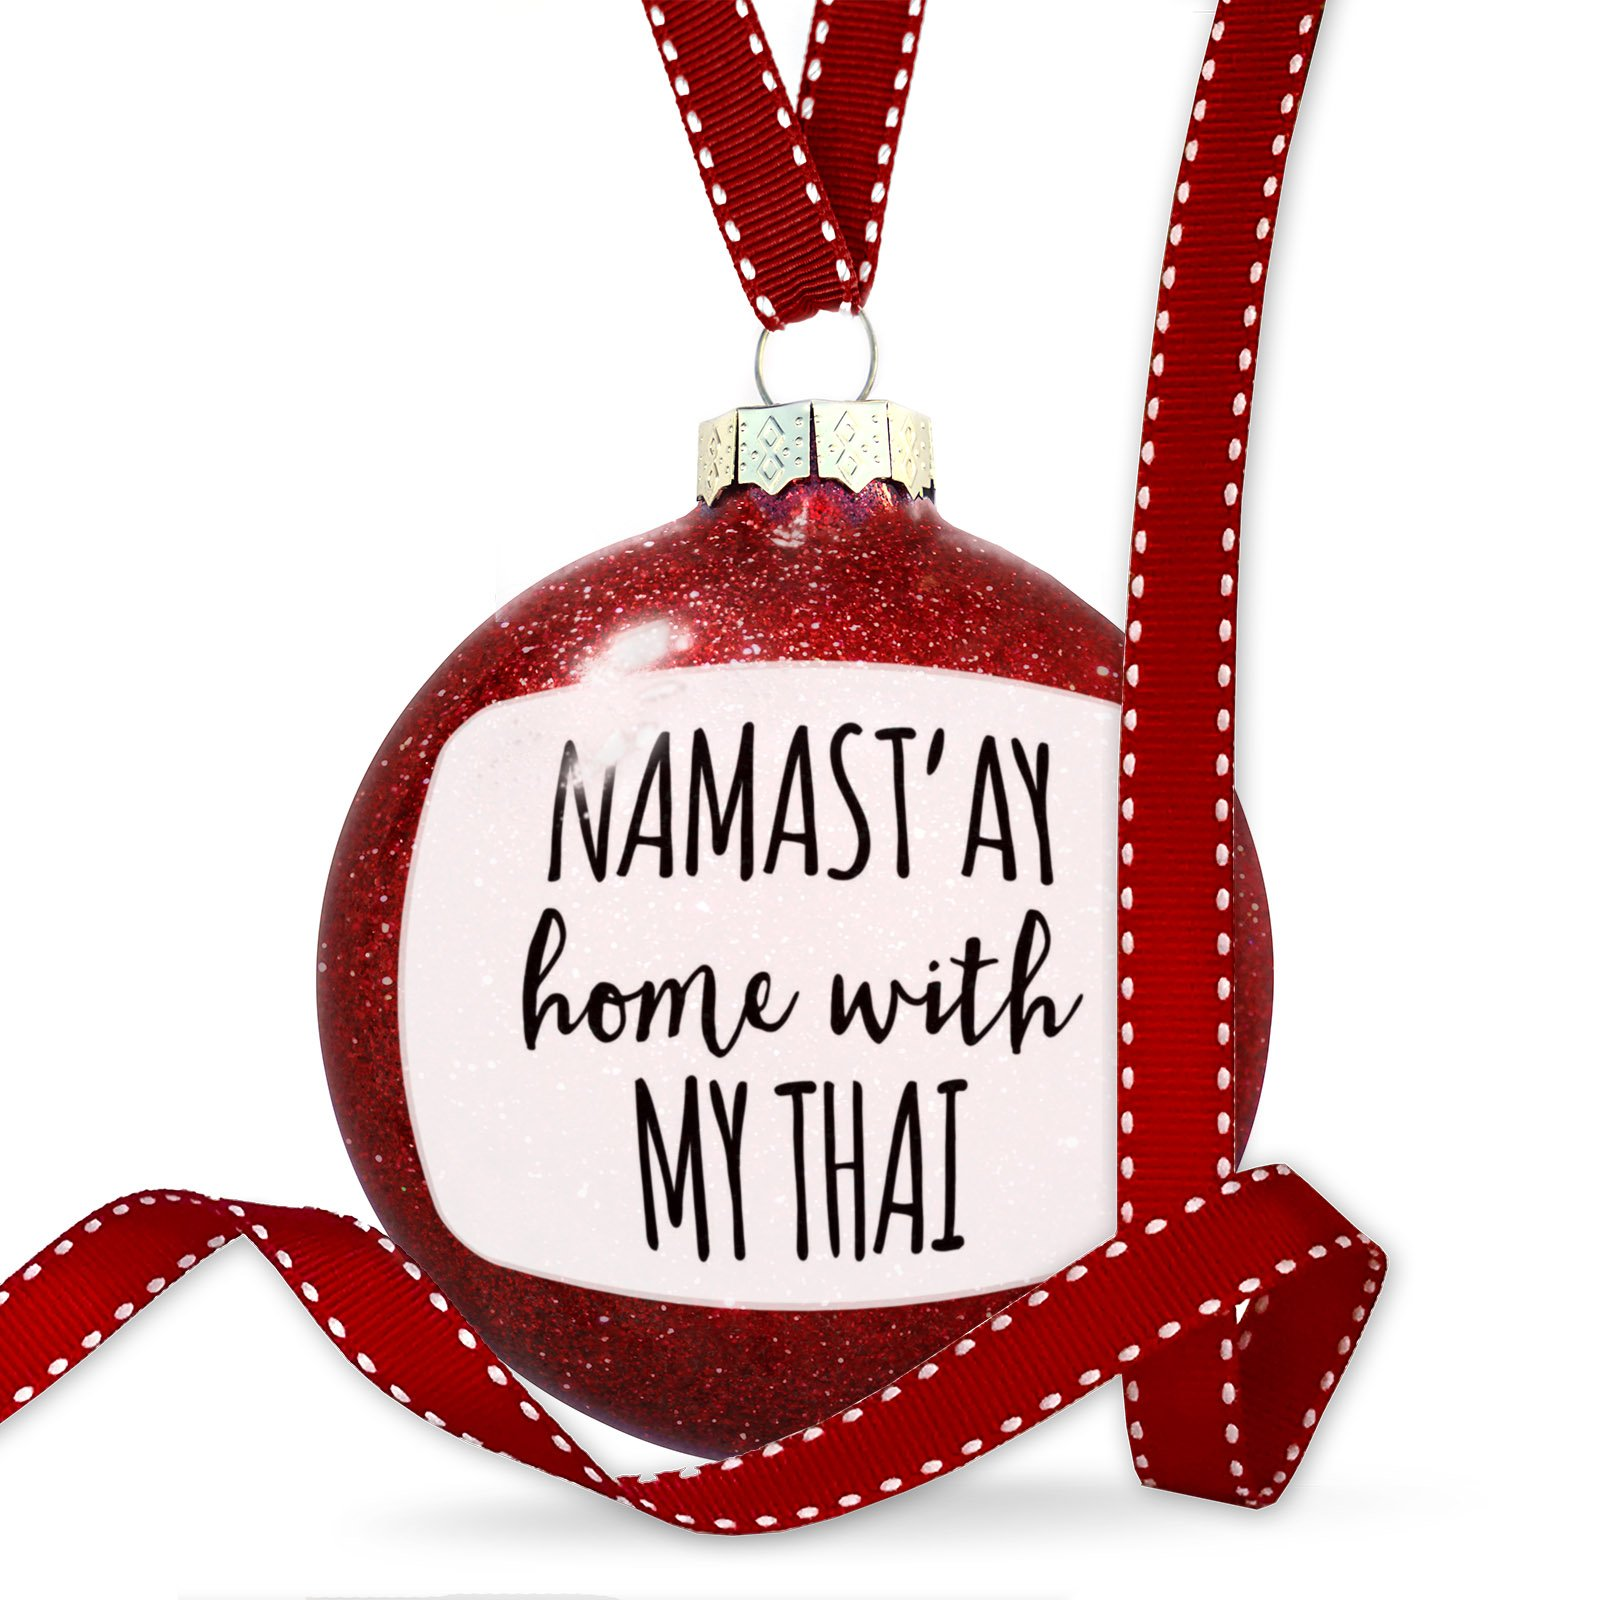 Christmas Decoration Namast'ay Home With My Thai Simple Sayings Ornament by NEONBLOND